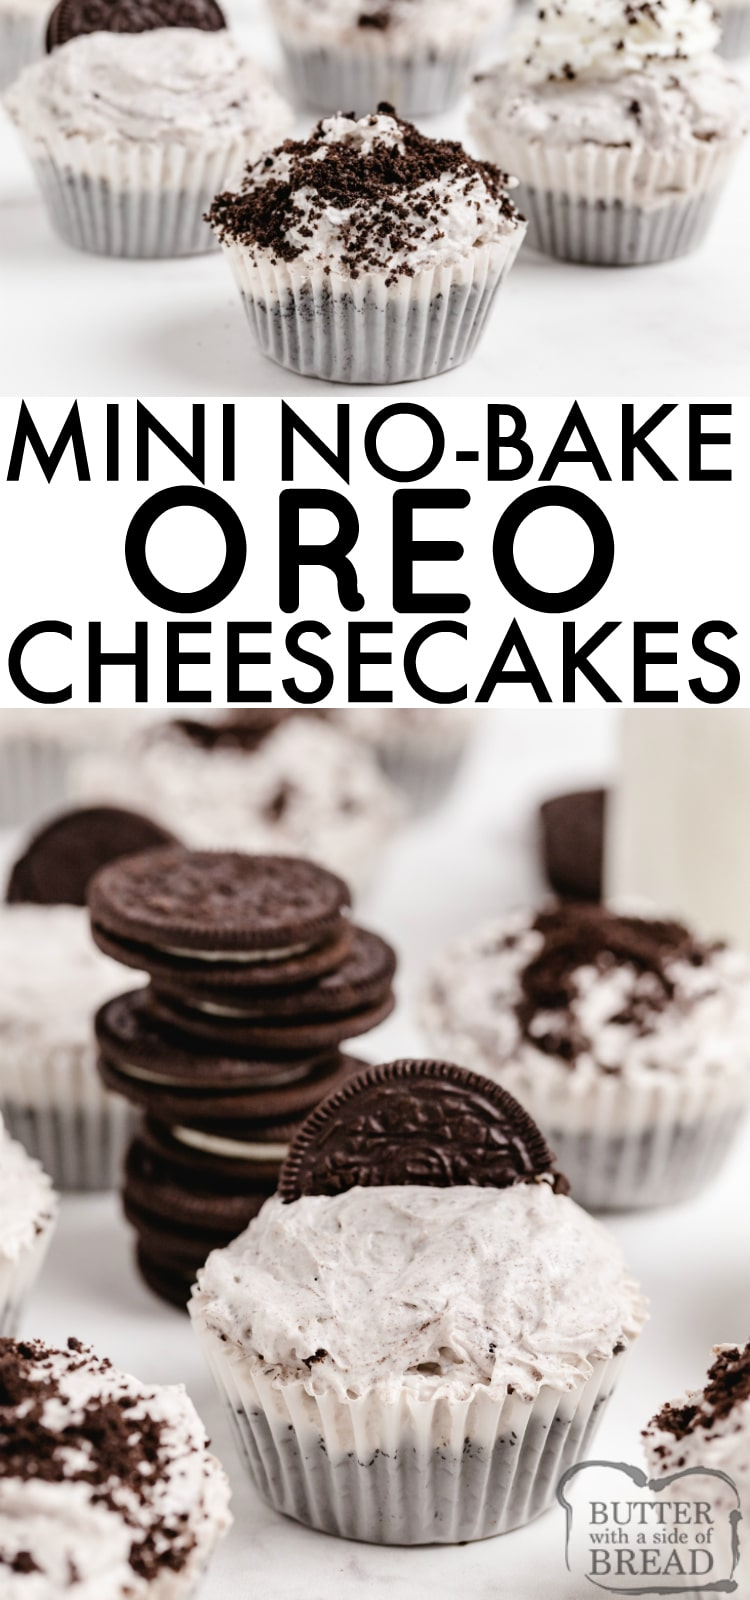 No Bake Mini Oreo Cheesecakes made with Oreos and Oreo pudding are delicious! This easy no bake cheesecake recipe made with only 6 ingredients is the perfect dessert recipe!